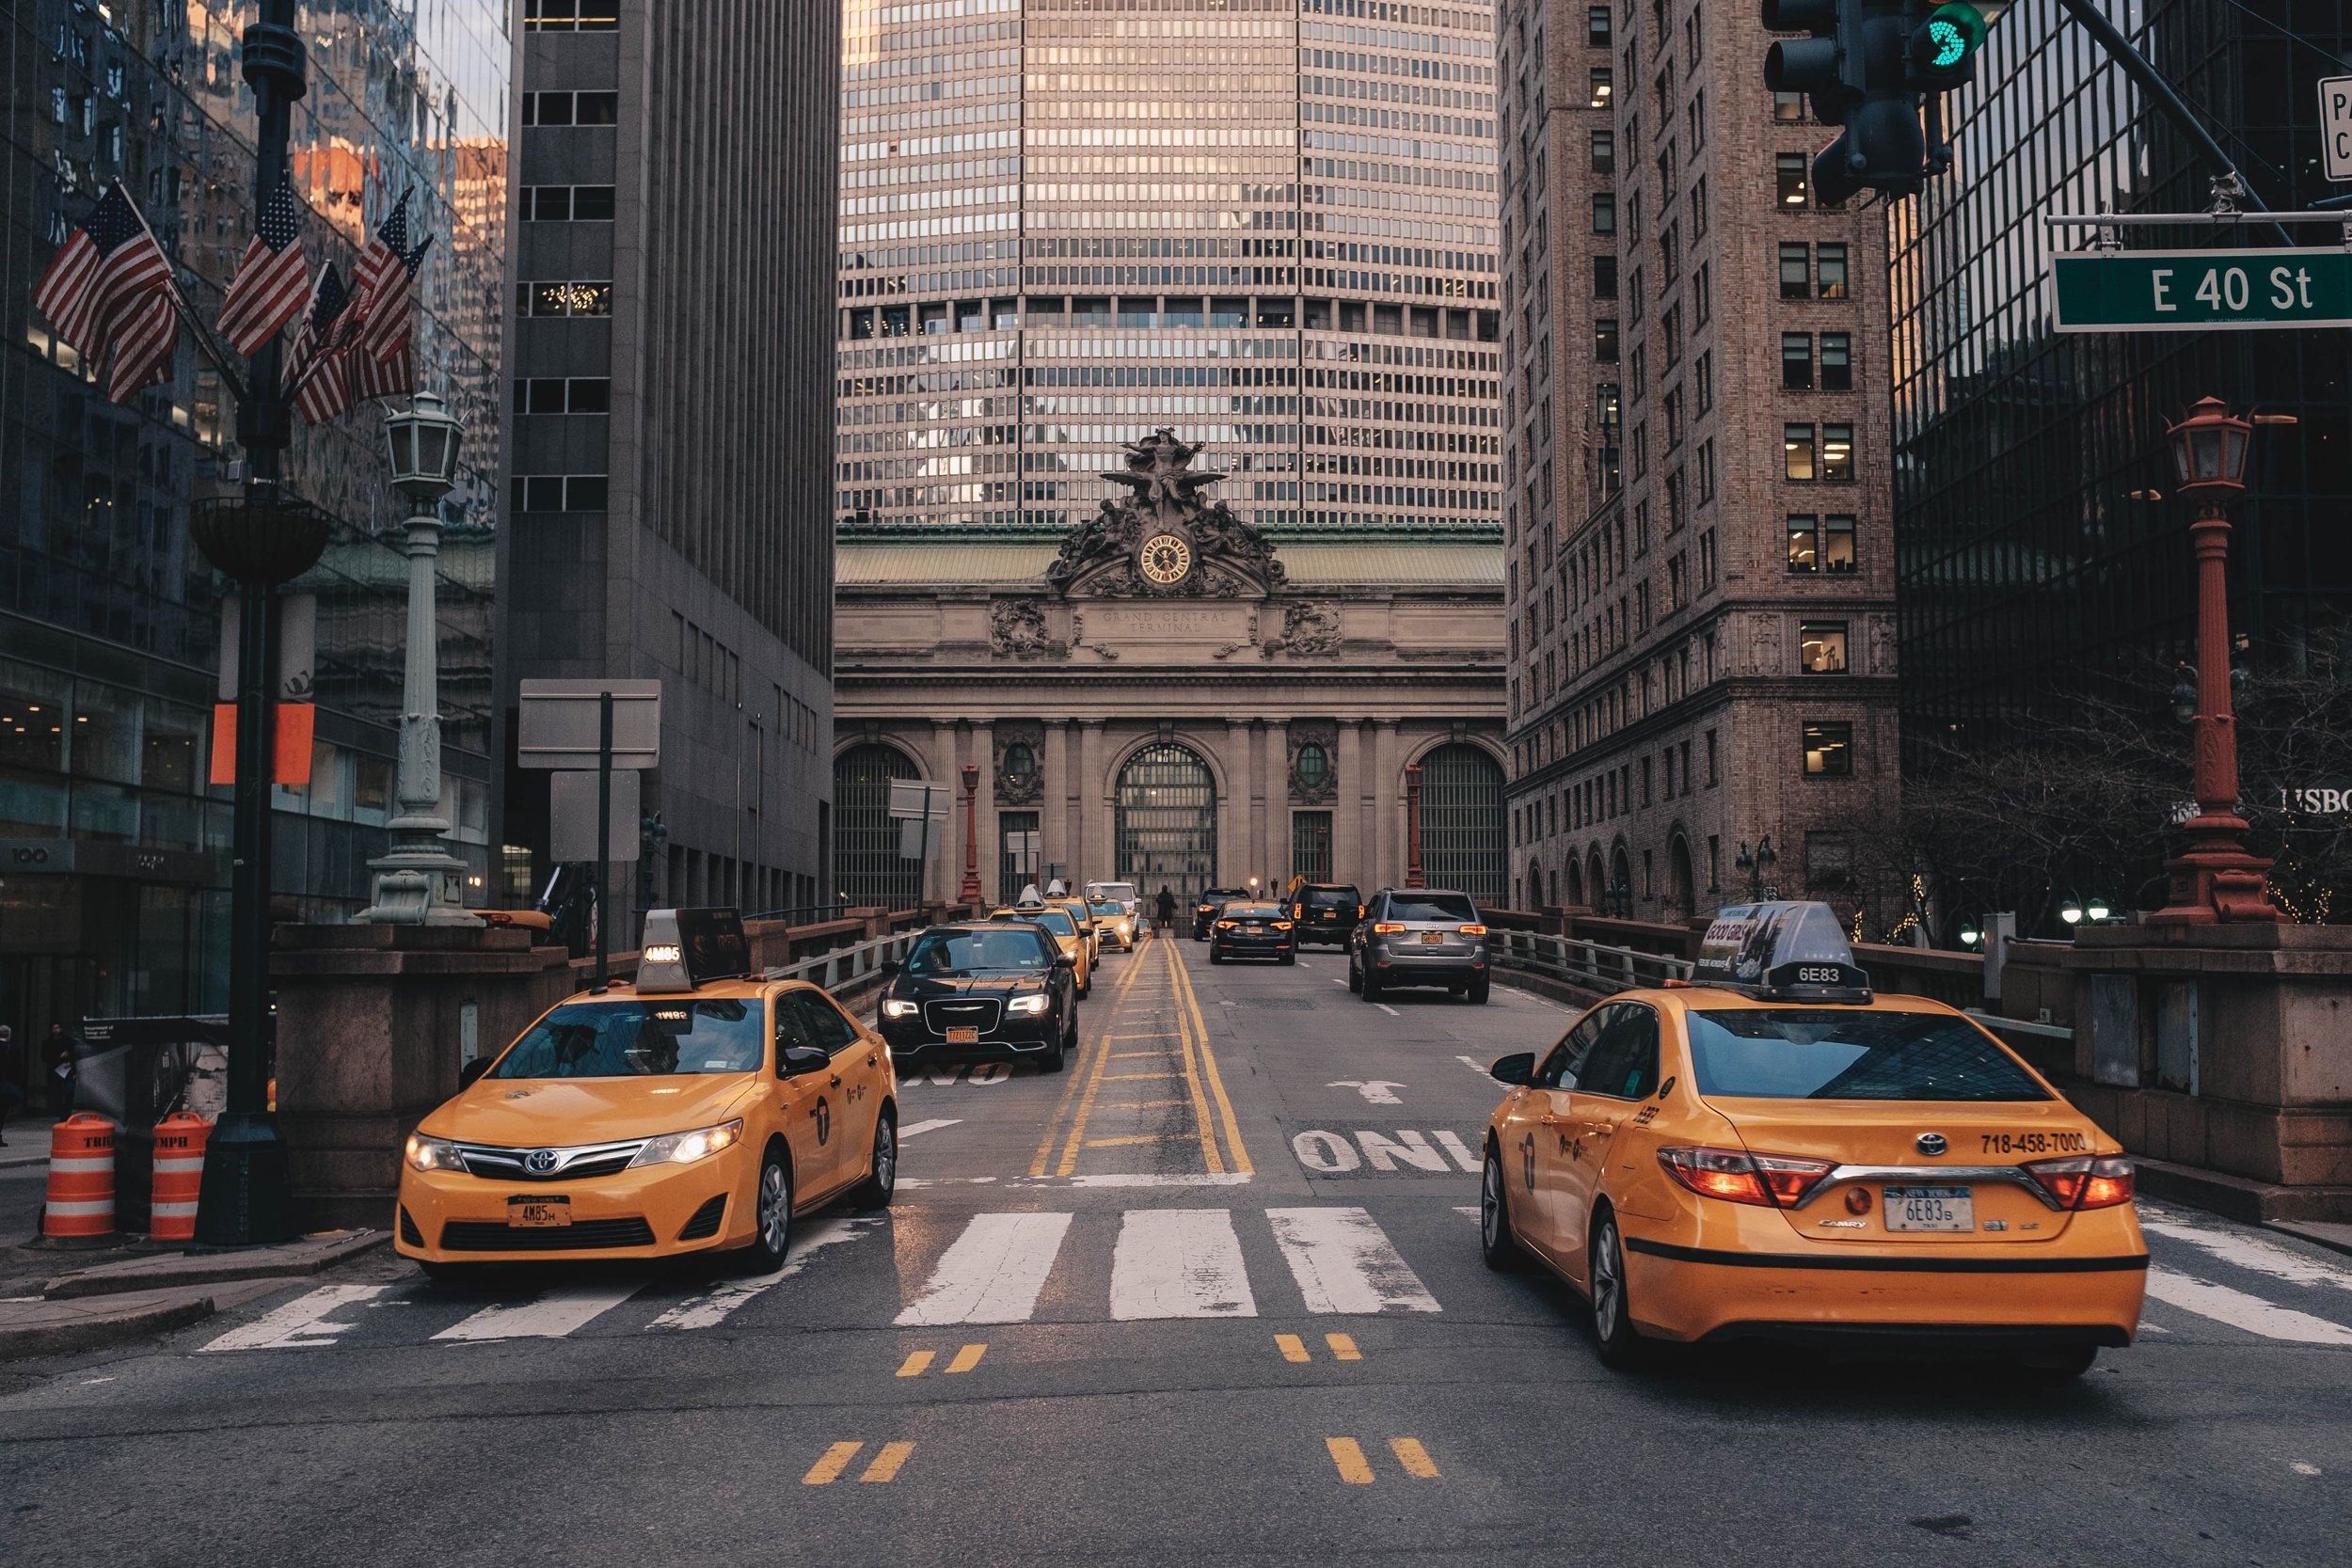 With Grand Central Terminal in the background, two of New York City's iconic modes of transport are juxtaposed as a shining model of mobility